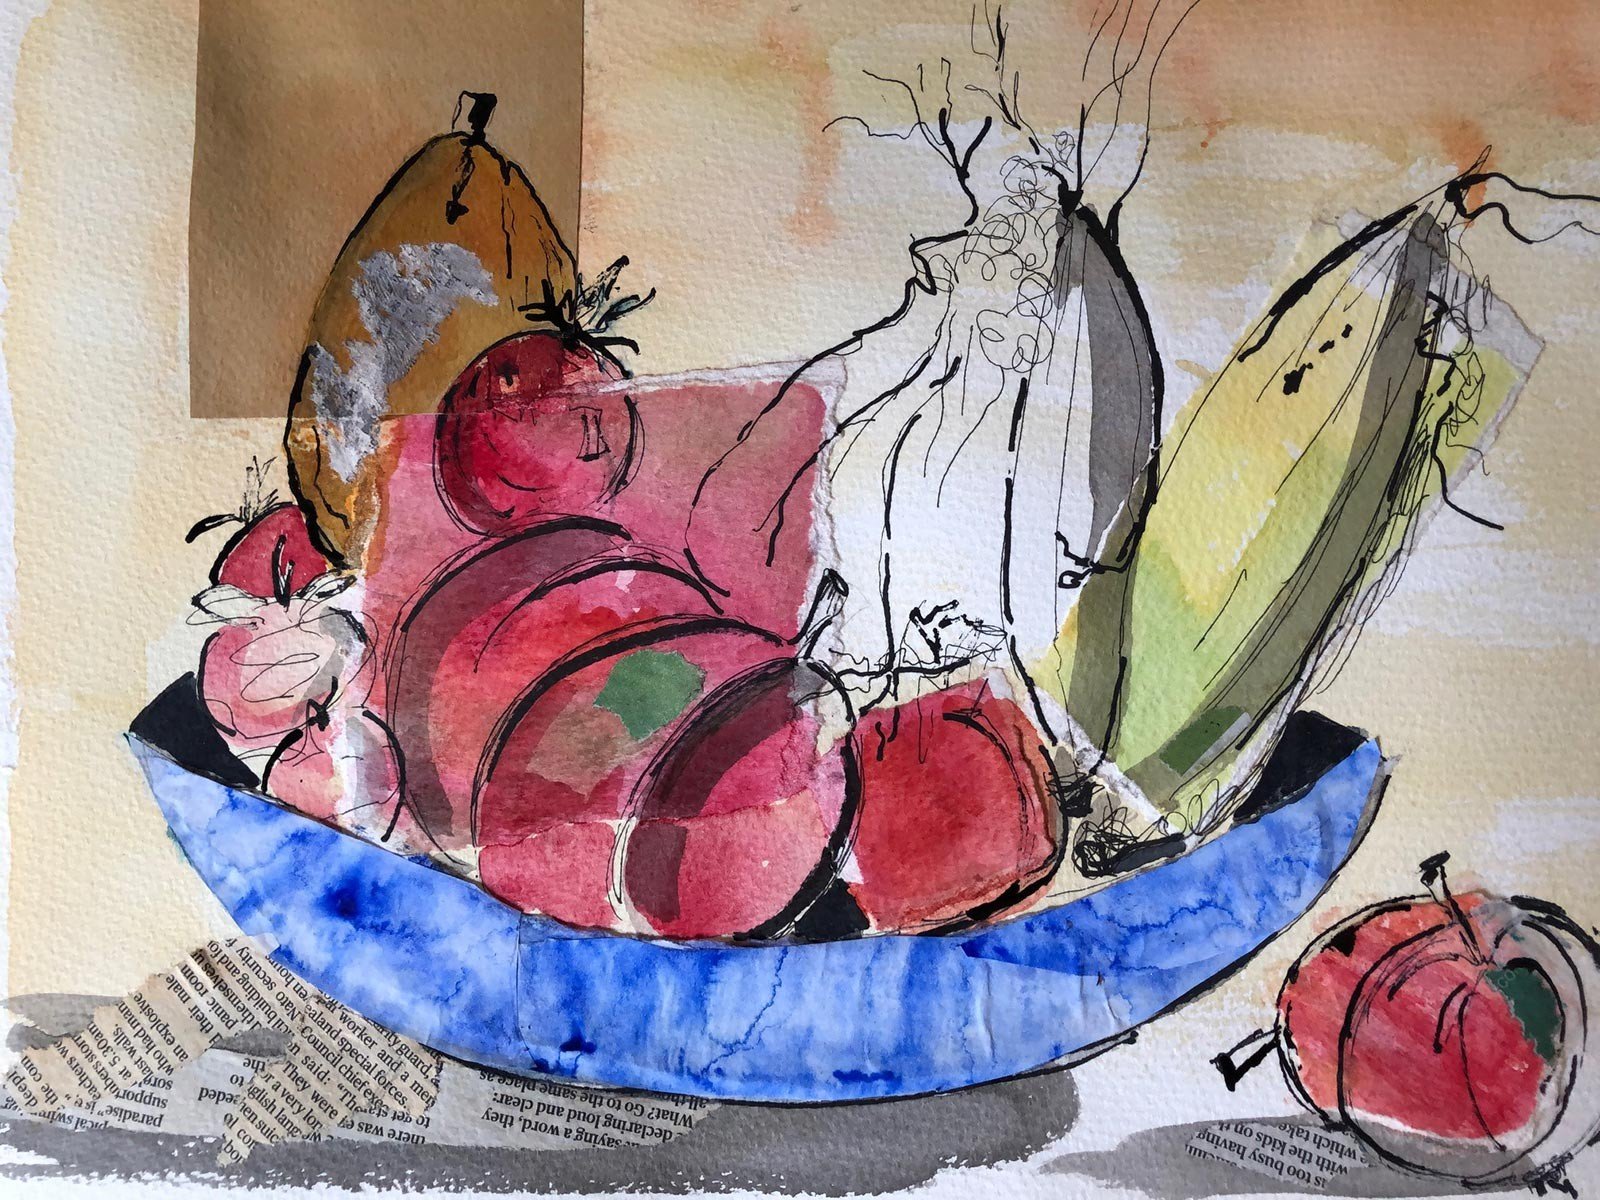 Fruit collage by Moira Fraser-Steele